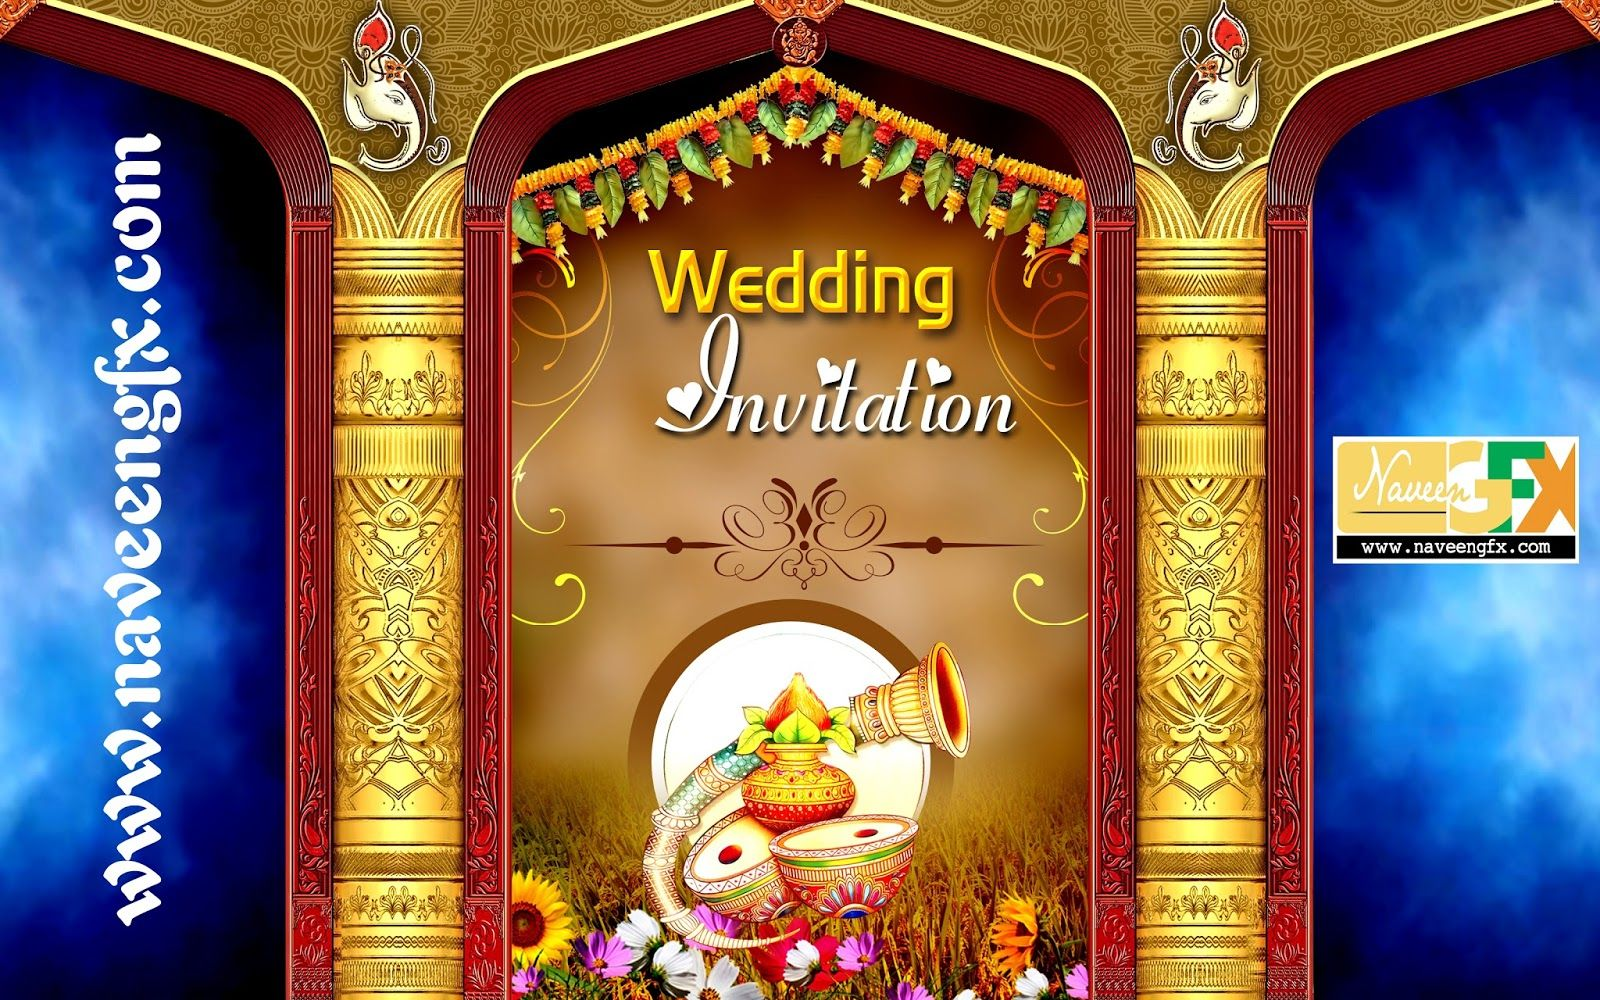 wedding invitation card format marathi wording%0A indianweddingbannerpsdtemplatefreedownload